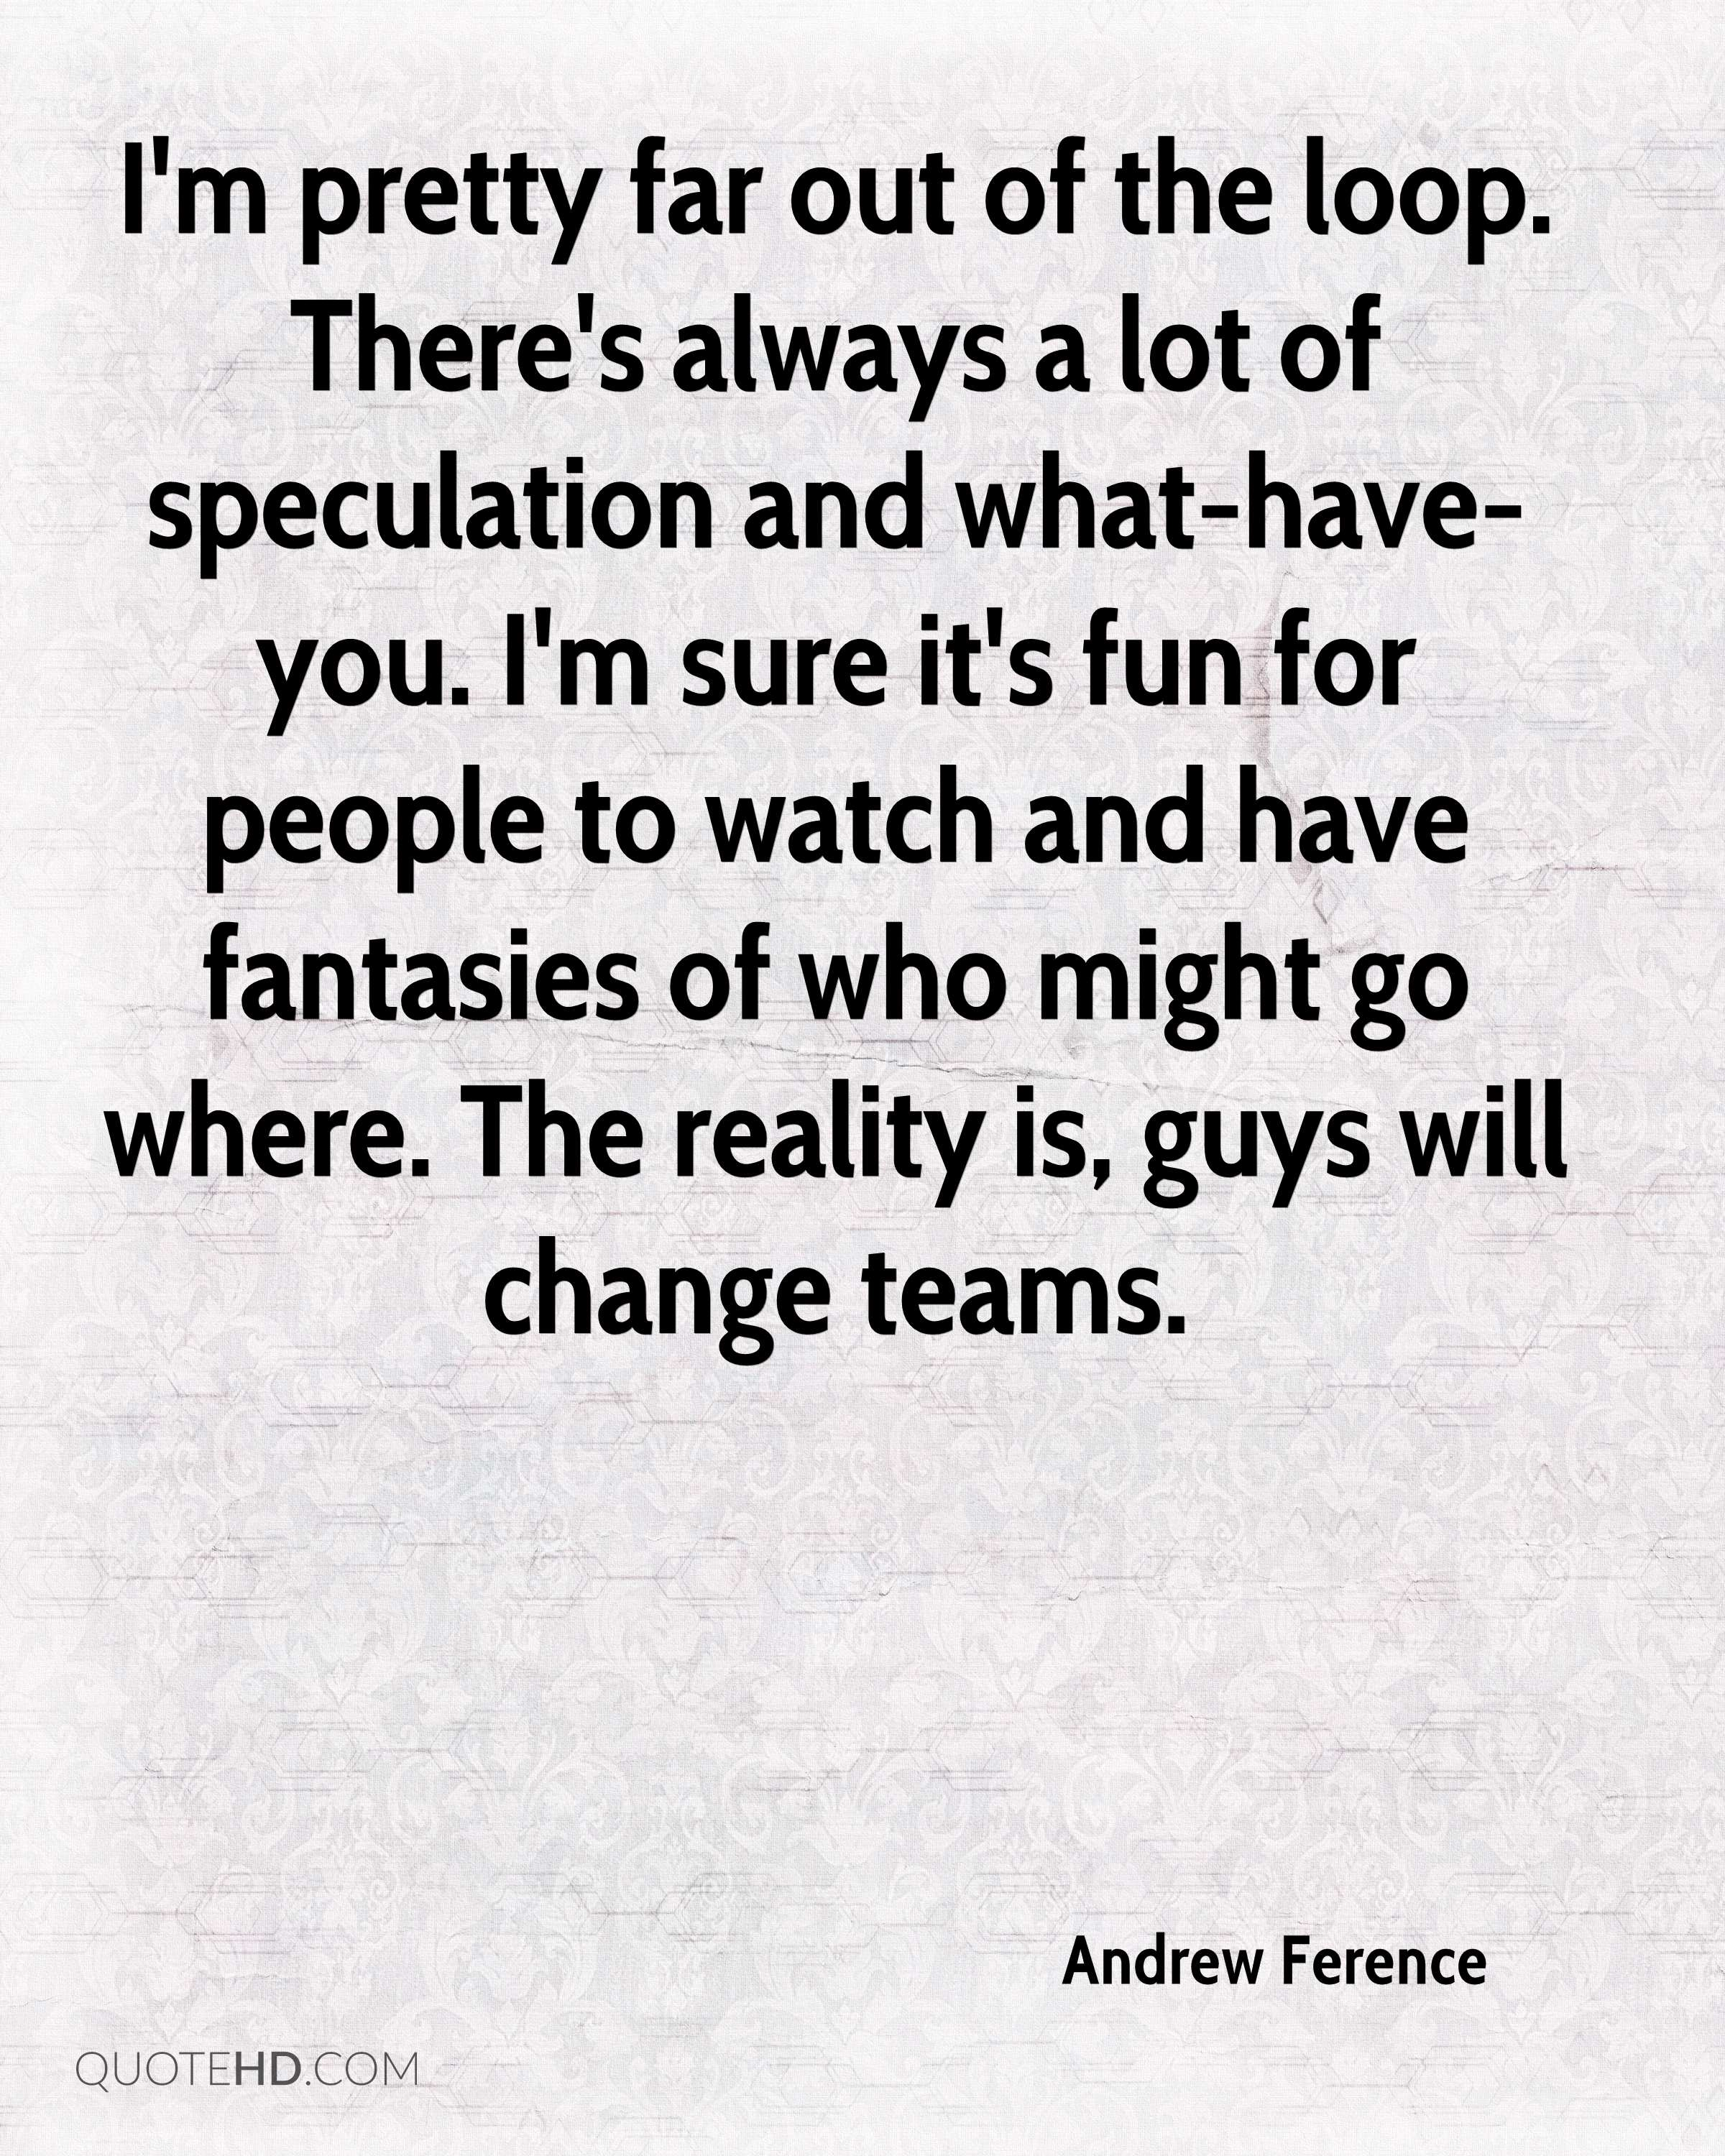 I'm pretty far out of the loop. There's always a lot of speculation and what-have-you. I'm sure it's fun for people to watch and have fantasies of who might go where. The reality is, guys will change teams.